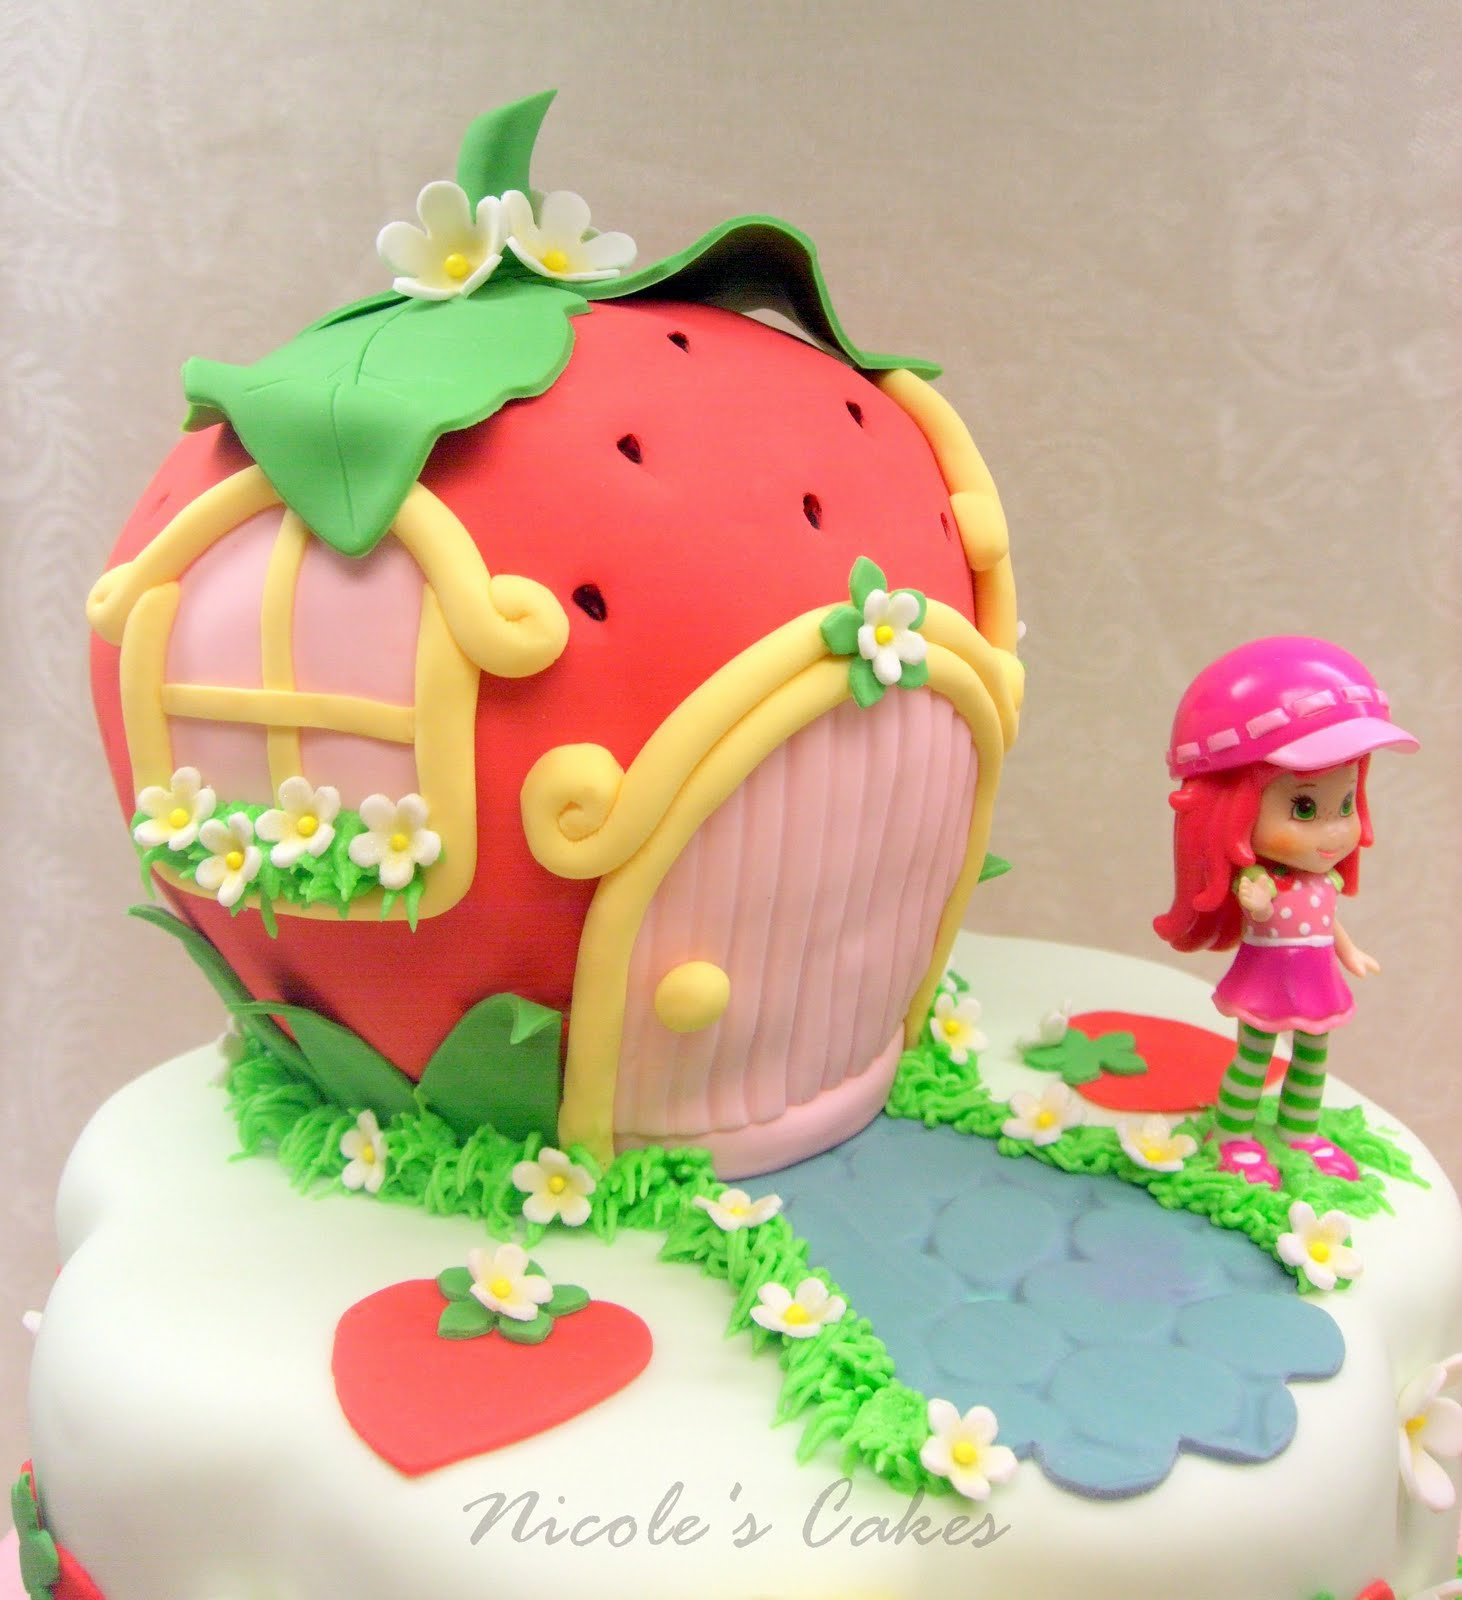 , Cakes & Creations!: A Berry Beautiful Strawberry Shortcake ...